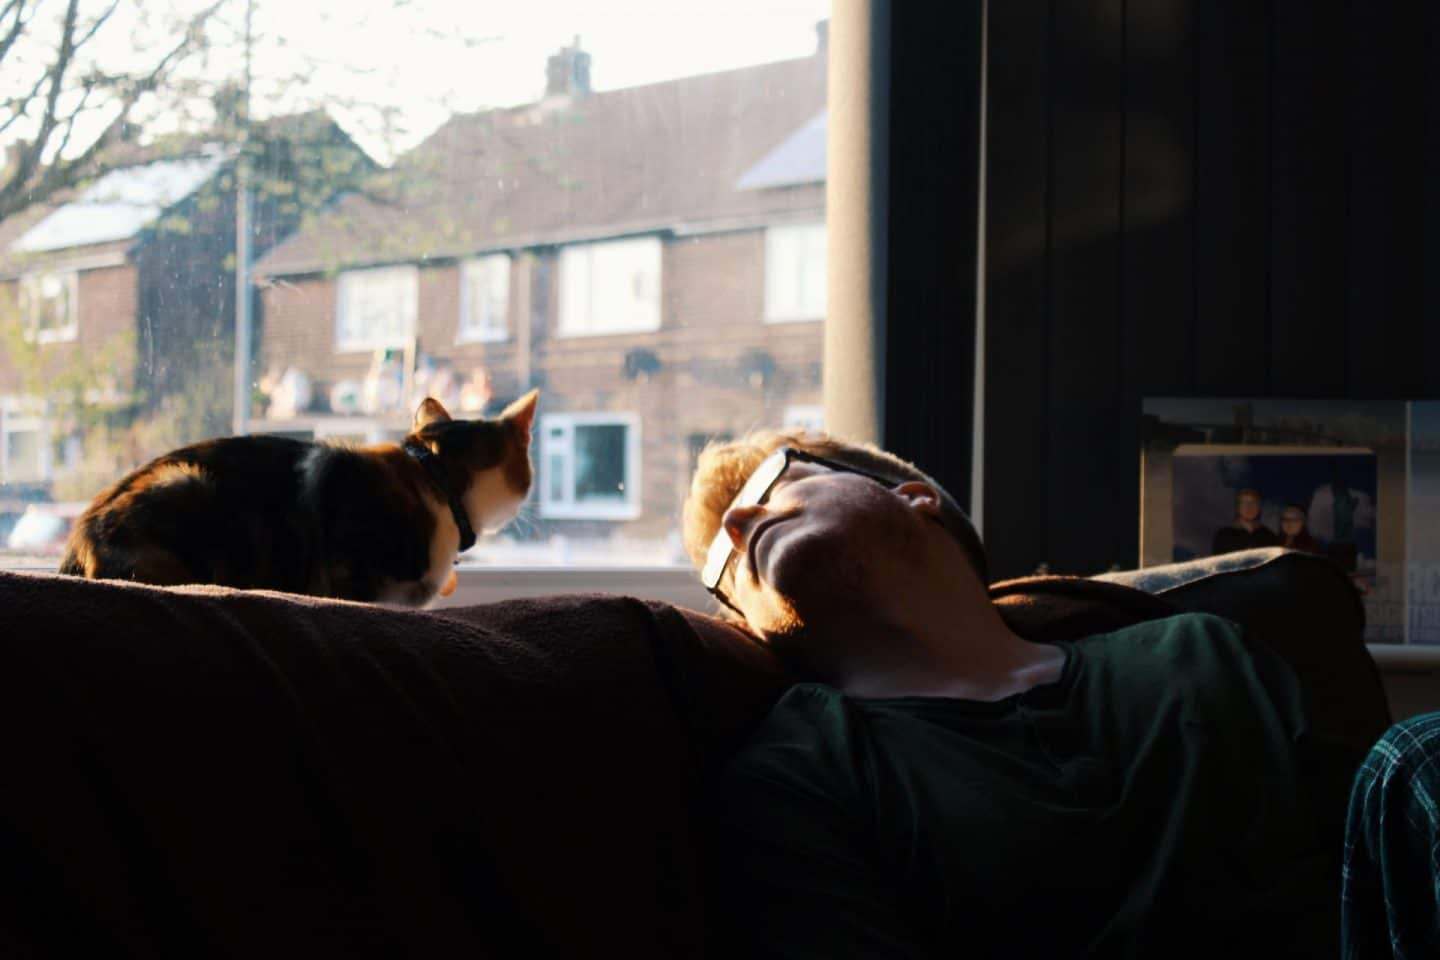 james-and-cat-window-1